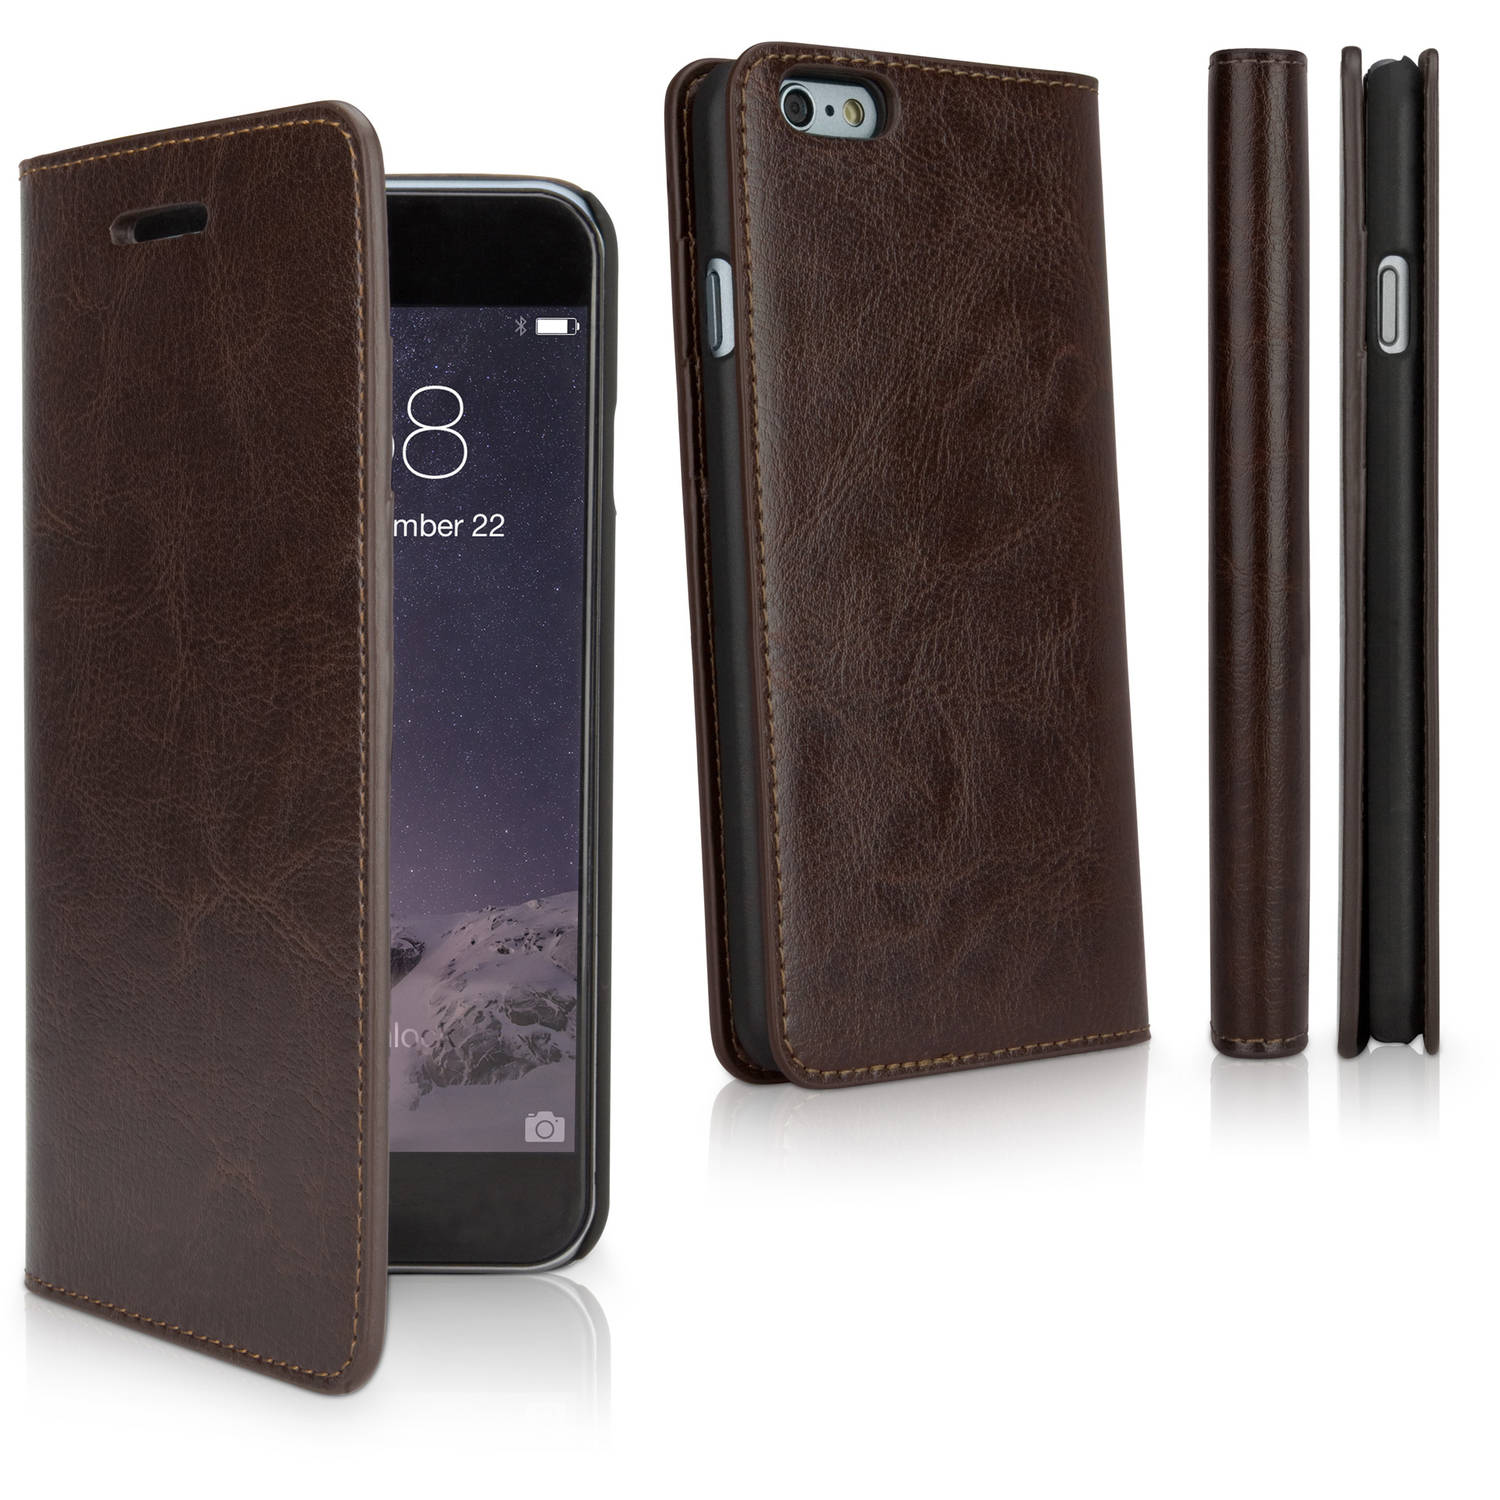 BoxWave Designio Leather Wallet Case for Apple iPhone 6/6s